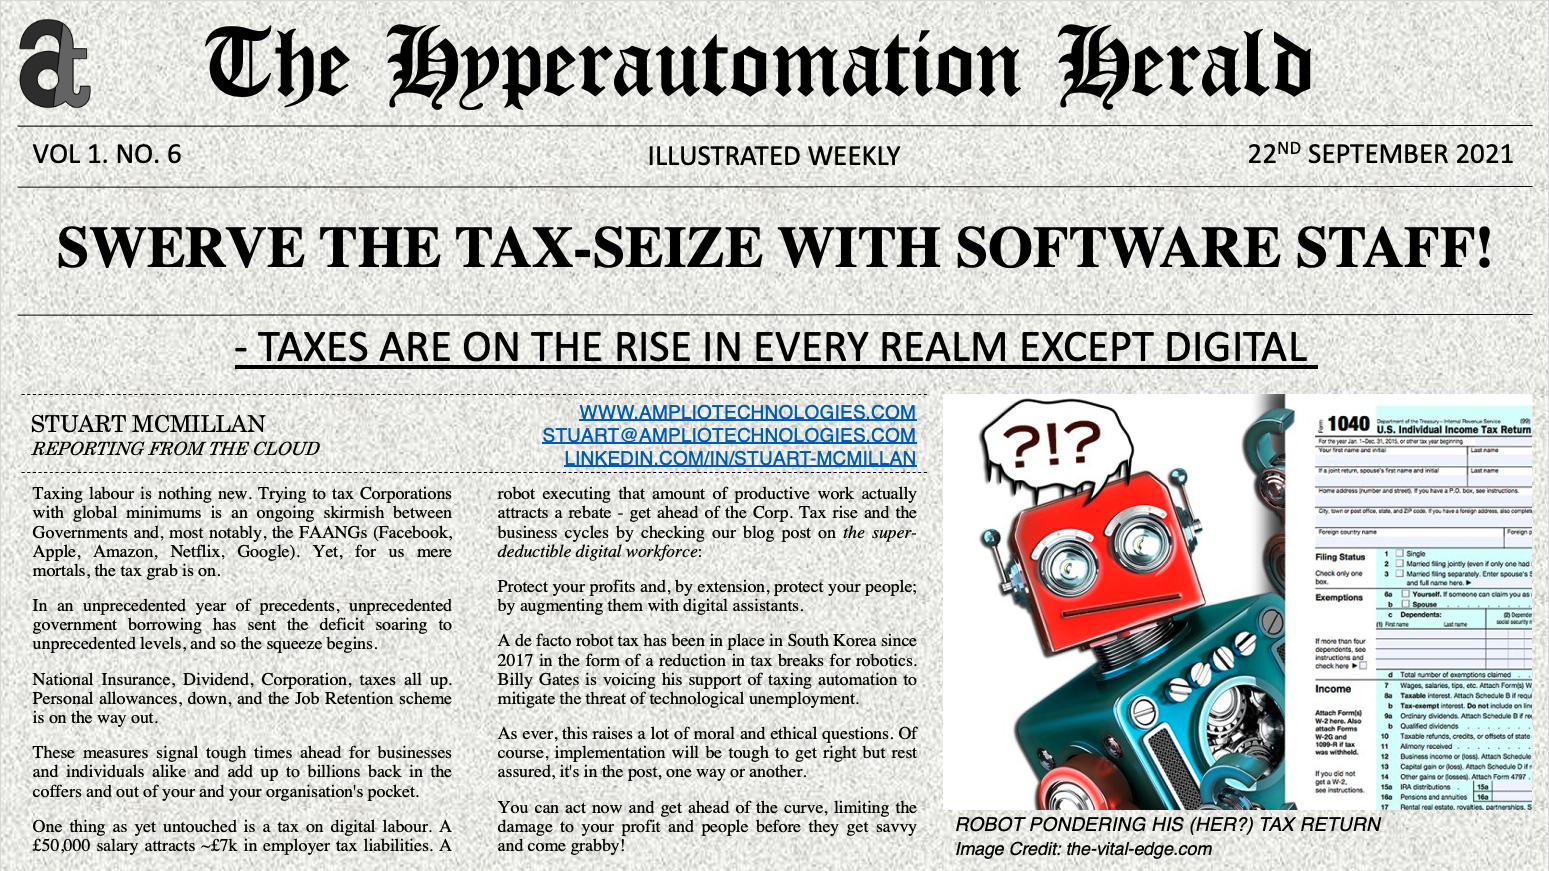 Hyperautomation Herald Newspaper Headlines: Swerve the tax-seize with software staff - taxes are on the rise in every realm except digital